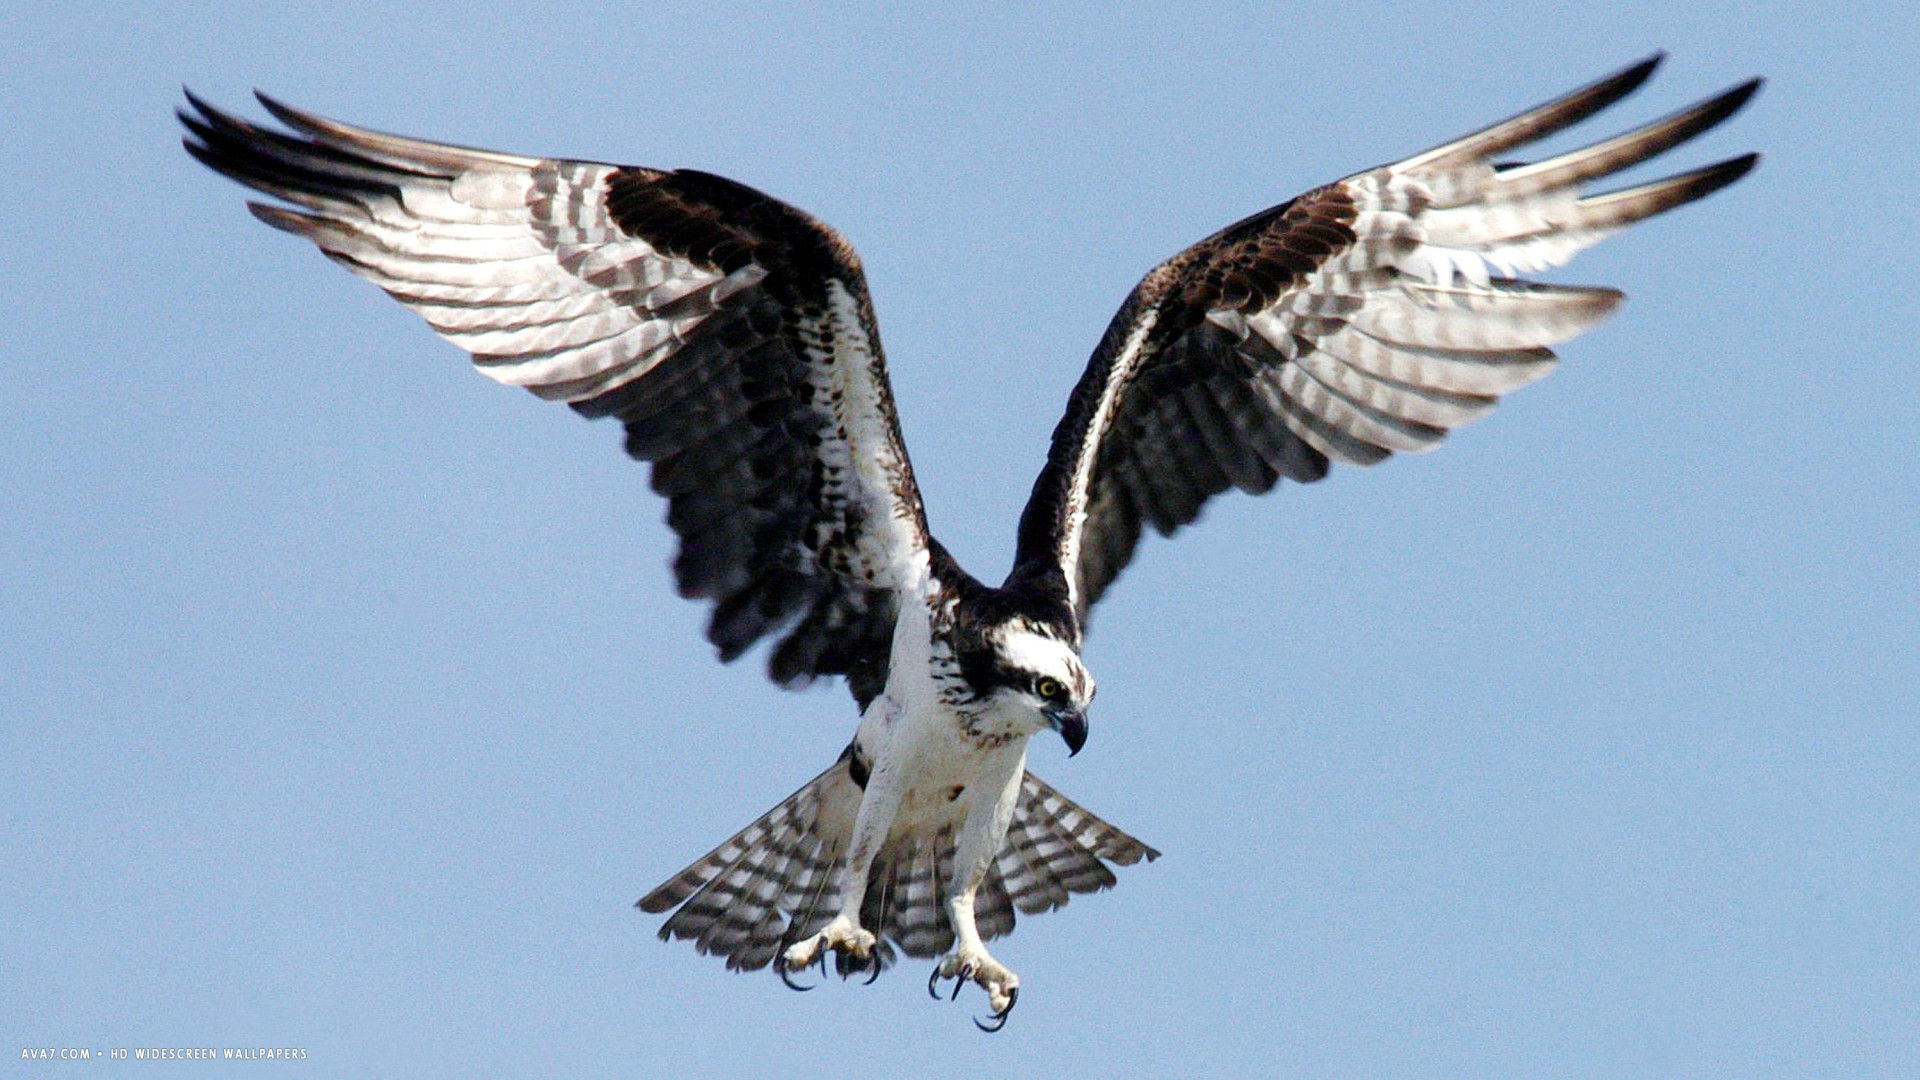 osprey sea hawk bird flying big wings claws hd widescreen wallpaper